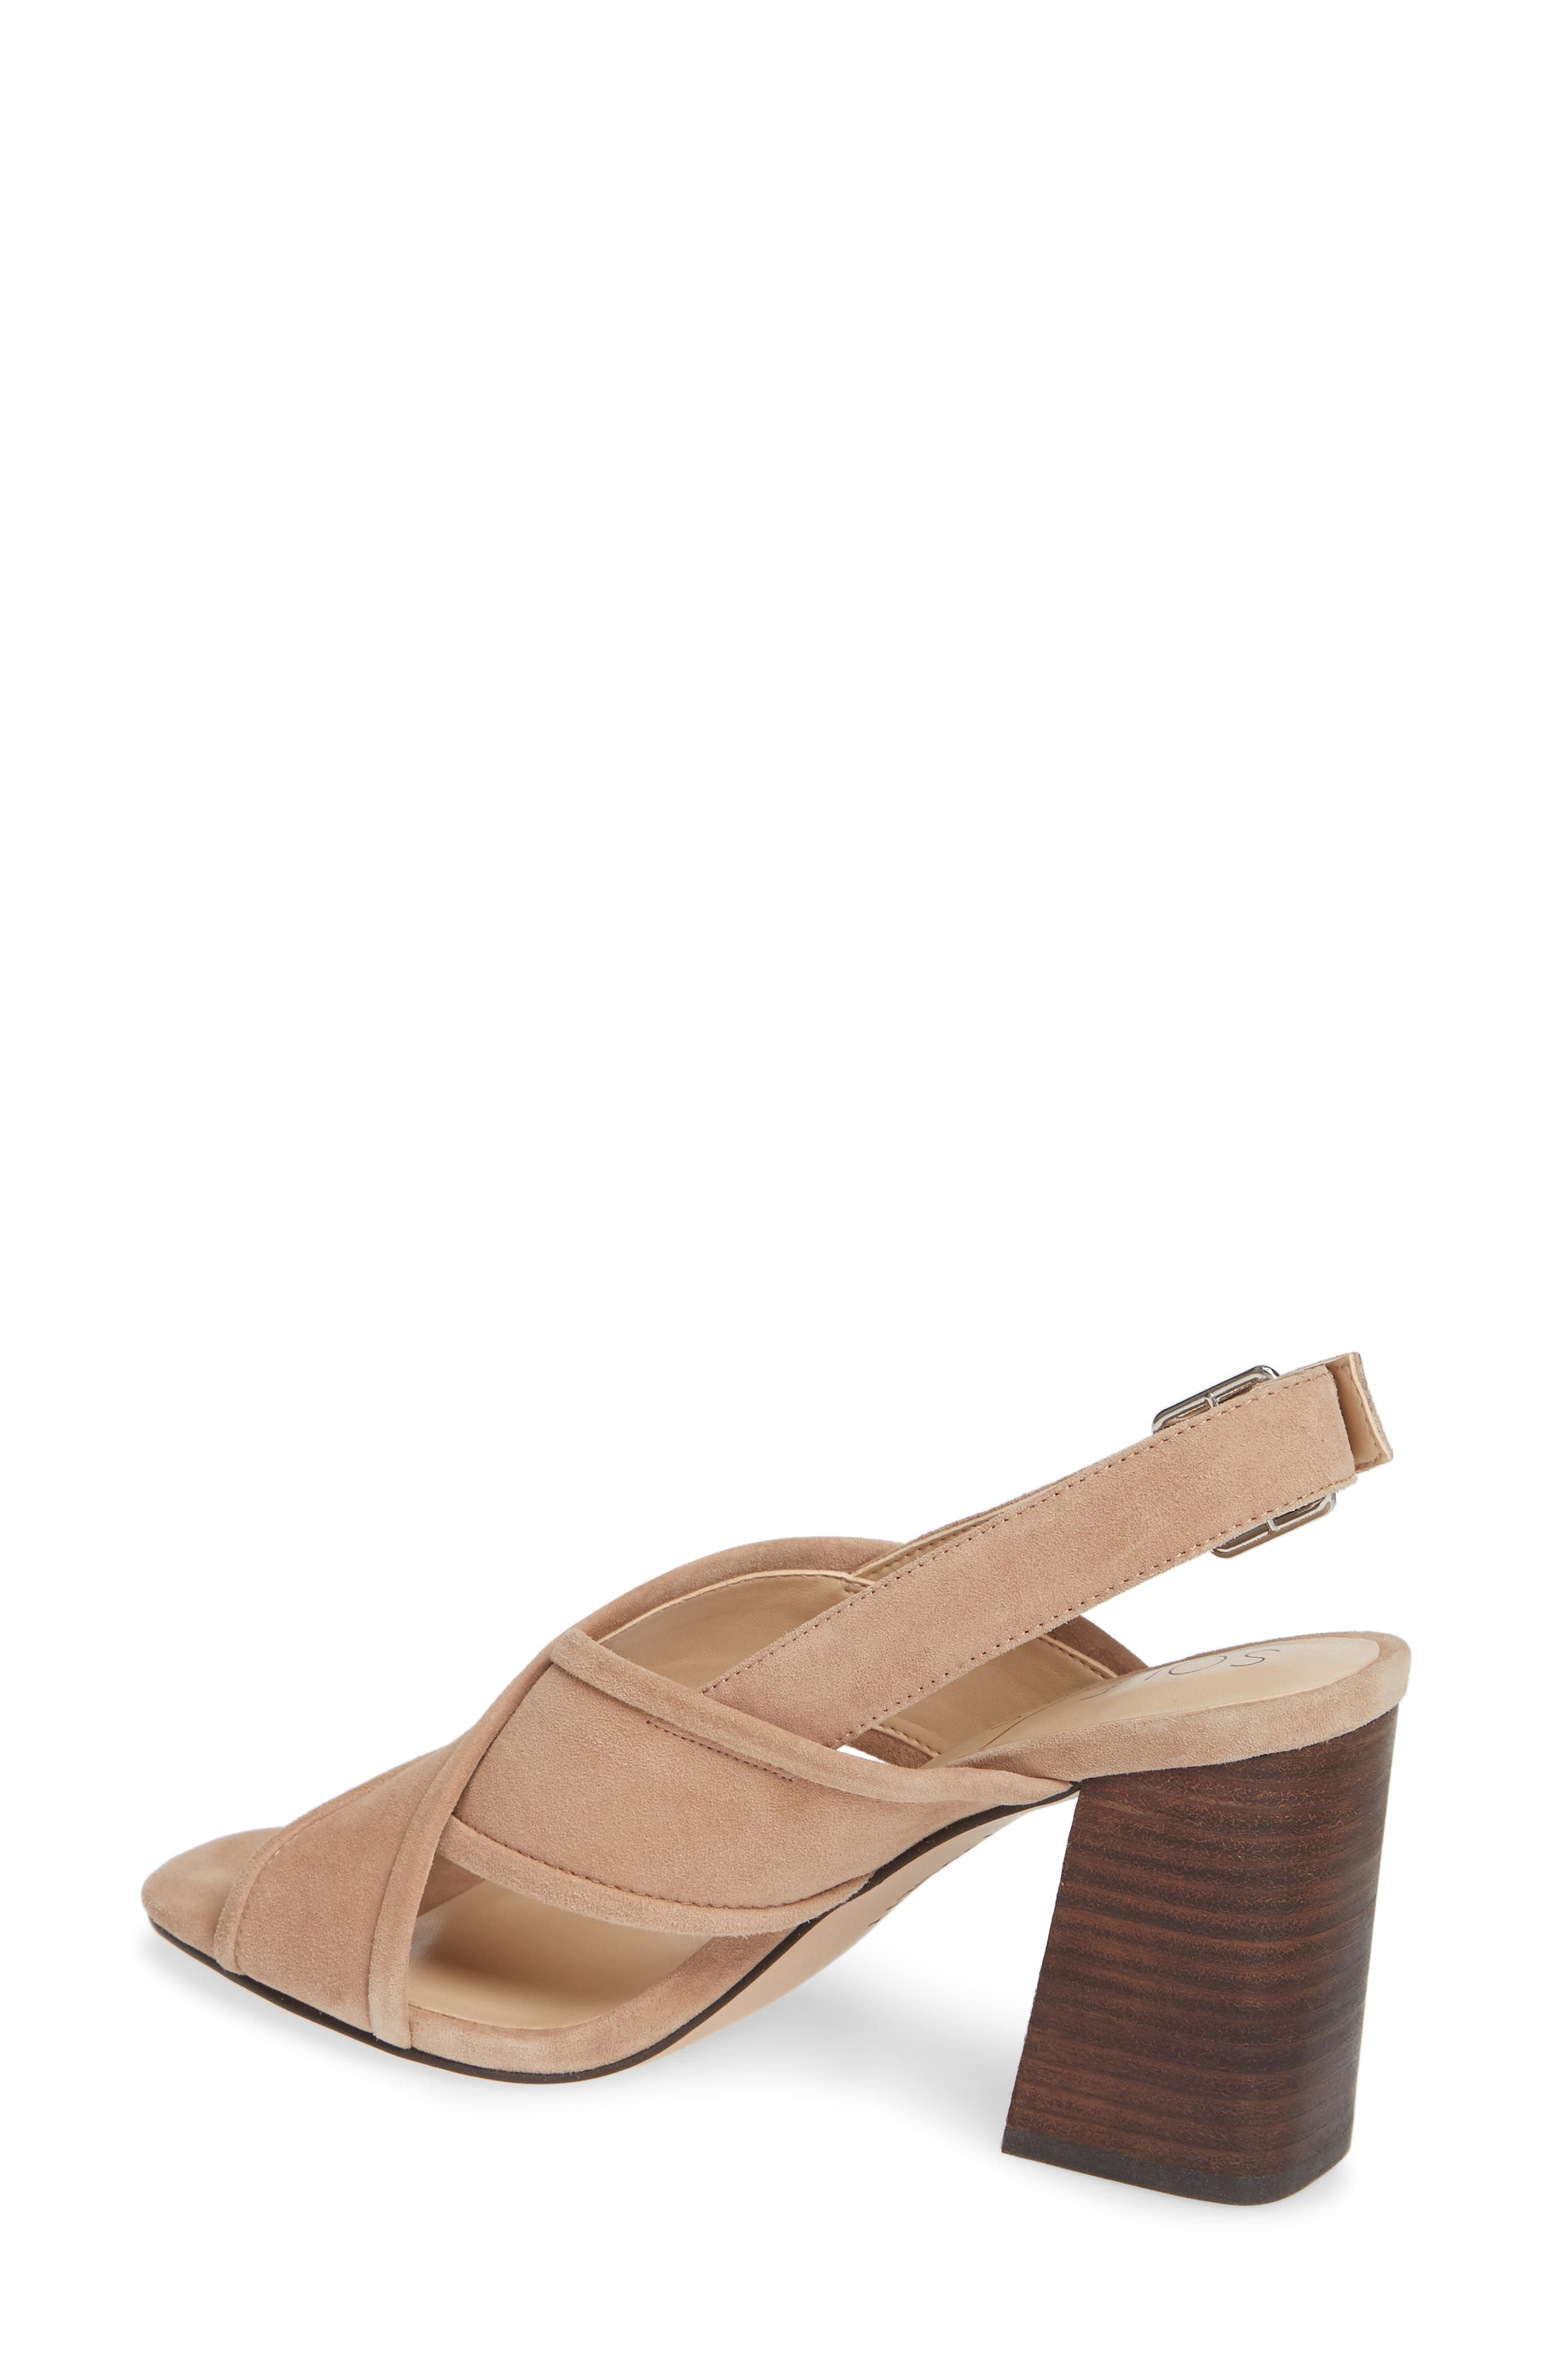 Joree Slingback Sandal,                             Alternate thumbnail 2, color,                             DUSTED TAUPE SUEDE